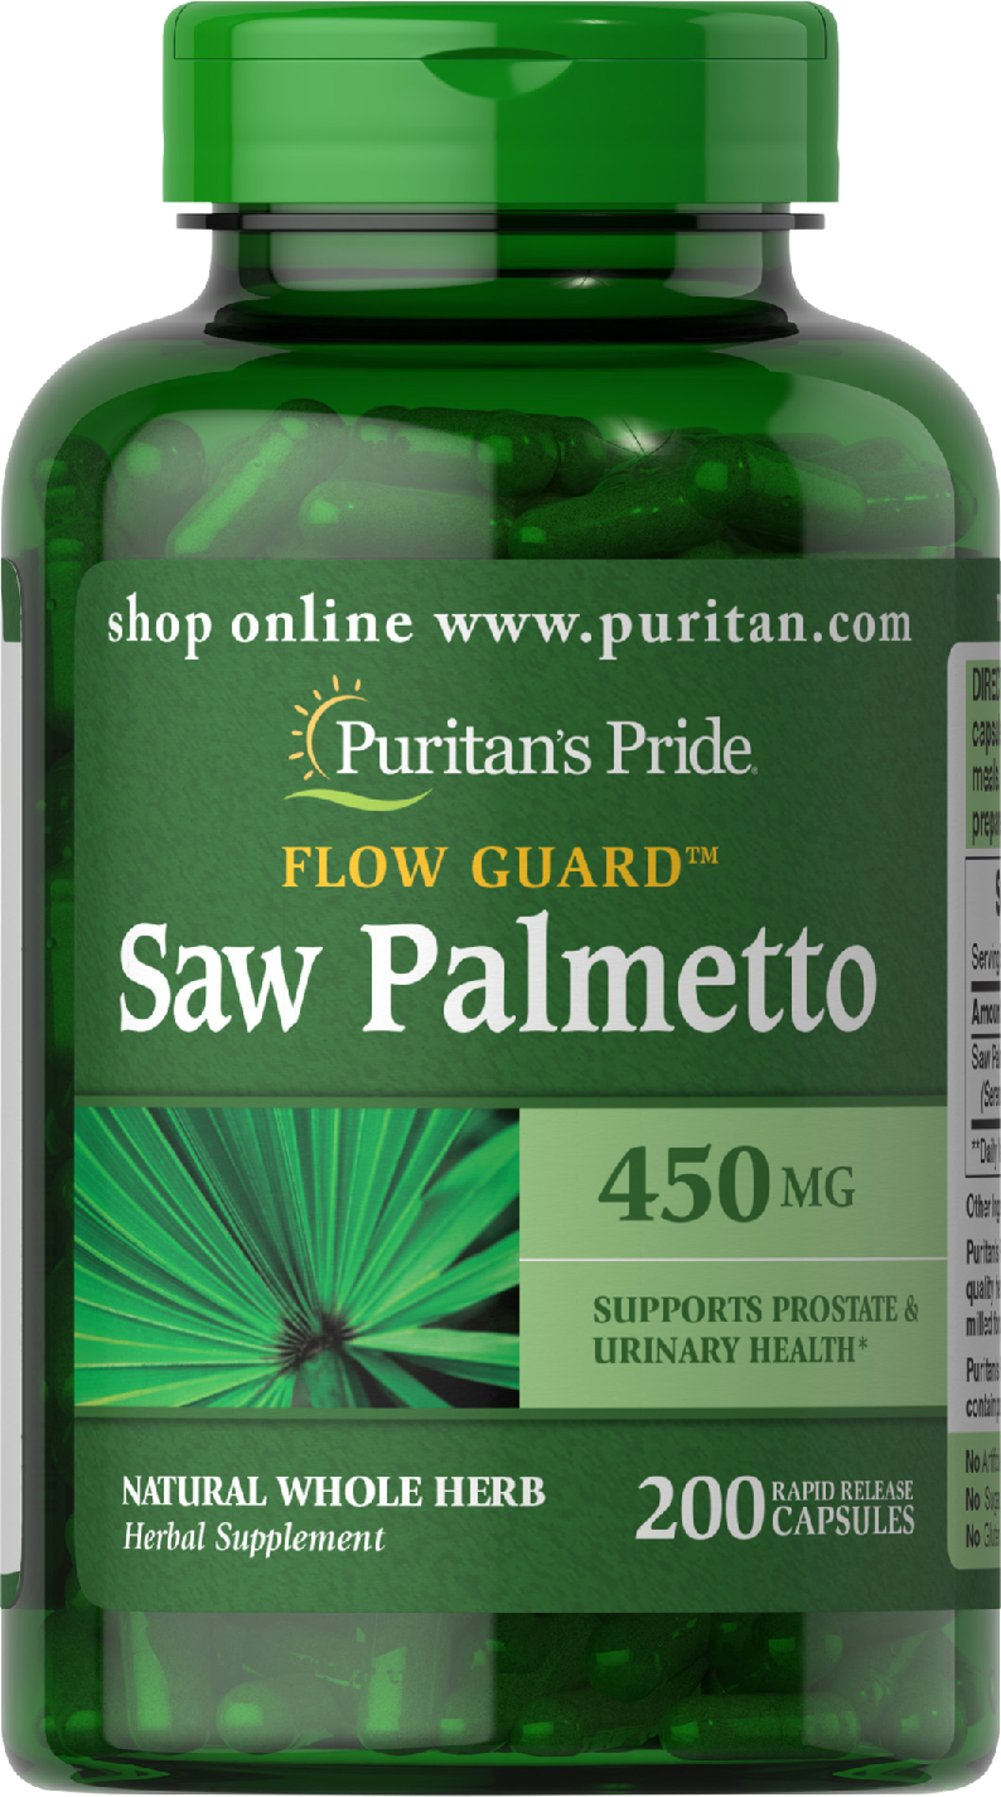 Saw Palmetto 450 mg <p>Men the world over are discovering the beneficial properties of Saw Palmetto. Saw Palmetto, derived from the berry of the Saw Palmetto tree, is the leading herb for men's health.** Saw Palmetto has traditionally been used to support prostate and urinary health in men.**</p><p>Our Saw Palmetto formula is fully assayed and tested. This means that you receive a dietary supplement that is superior in purity and quality.</p> 200 Capsules 450 mg $14.99